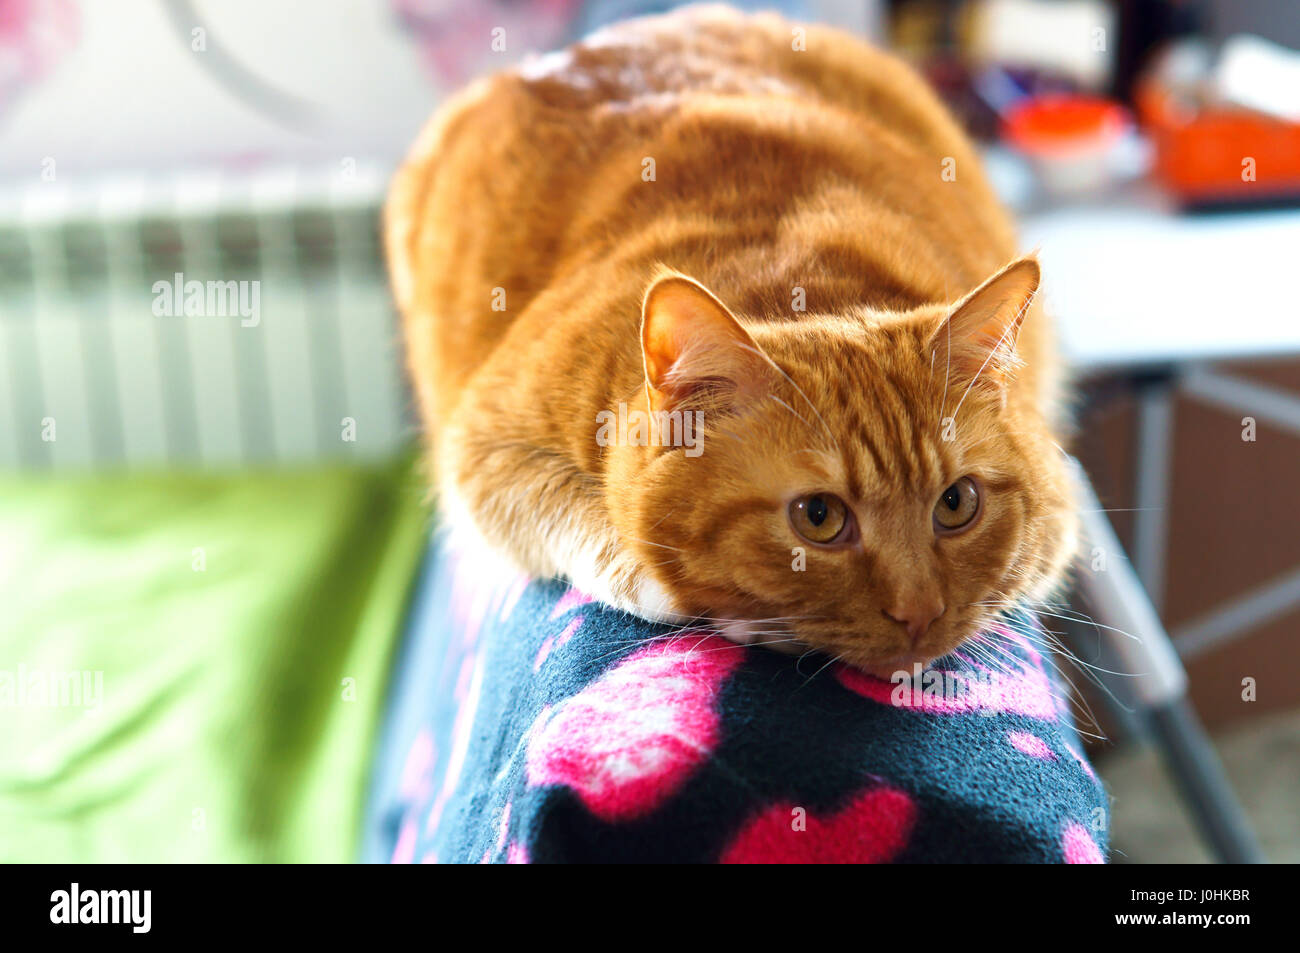 Animal Crush Cat Red Home Soft Caress Love Crush Stock Photo 138071355